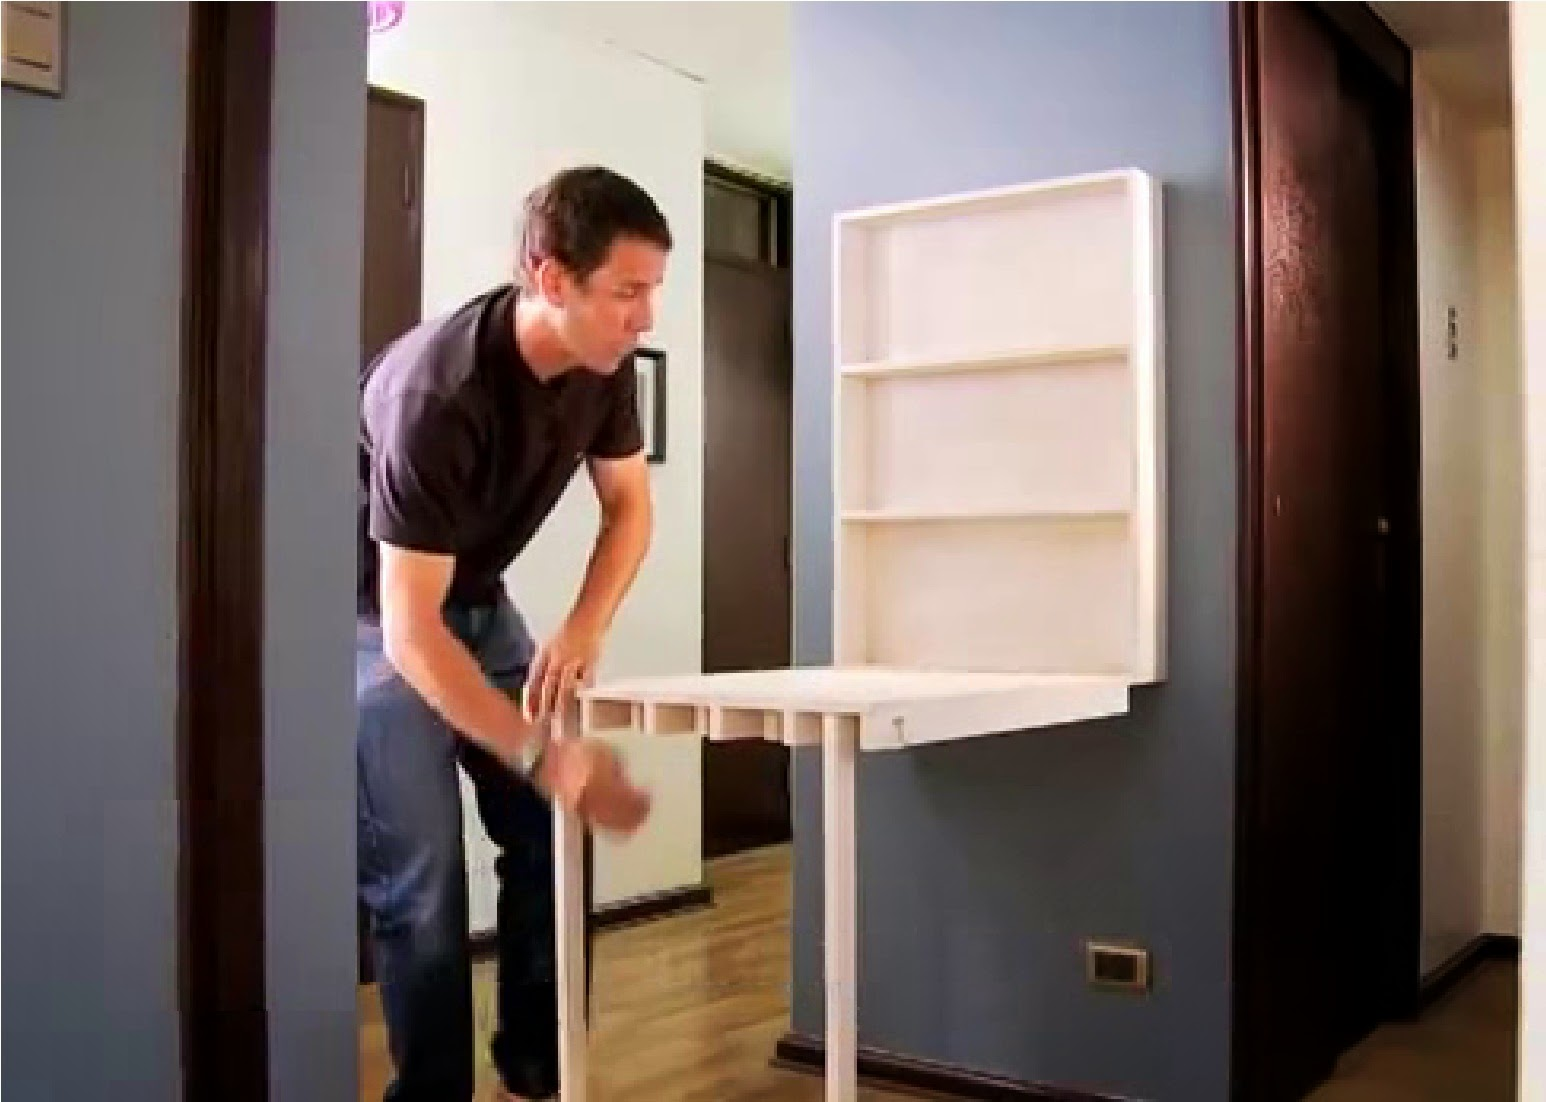 Muebles inteligentes el escritorio plegable for Muebles inteligentes